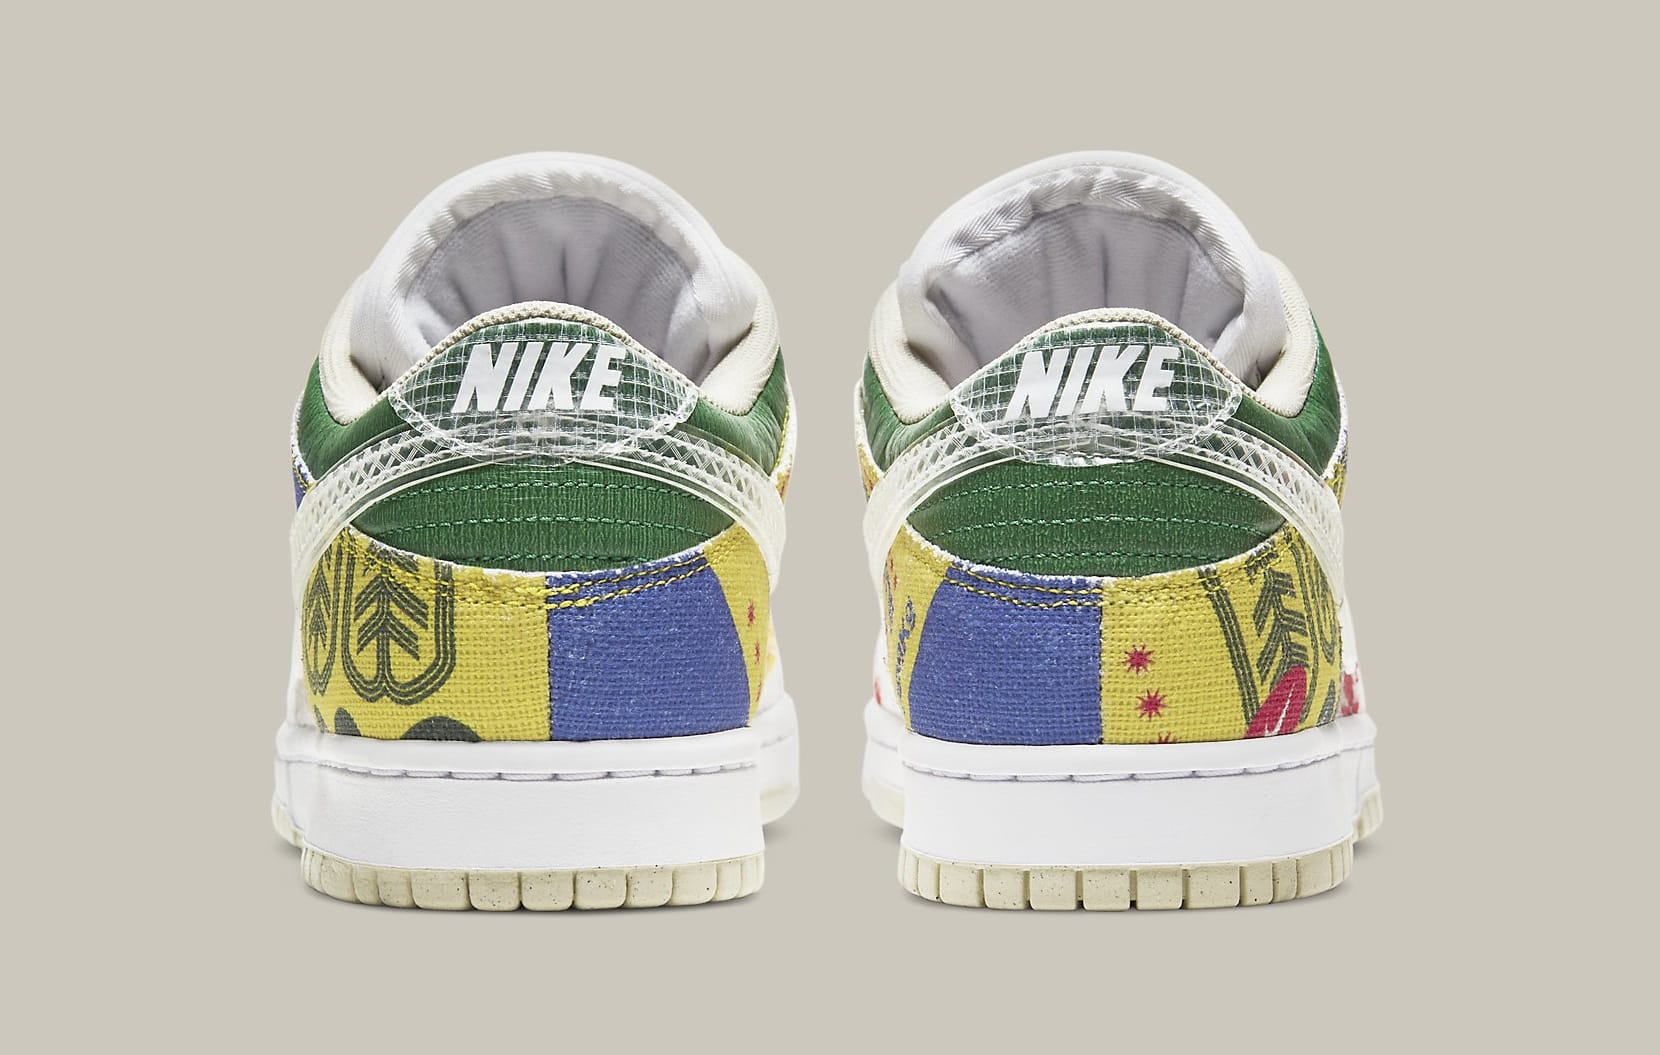 Nike Dunk Low 'City Market' DA6125-900 Heel